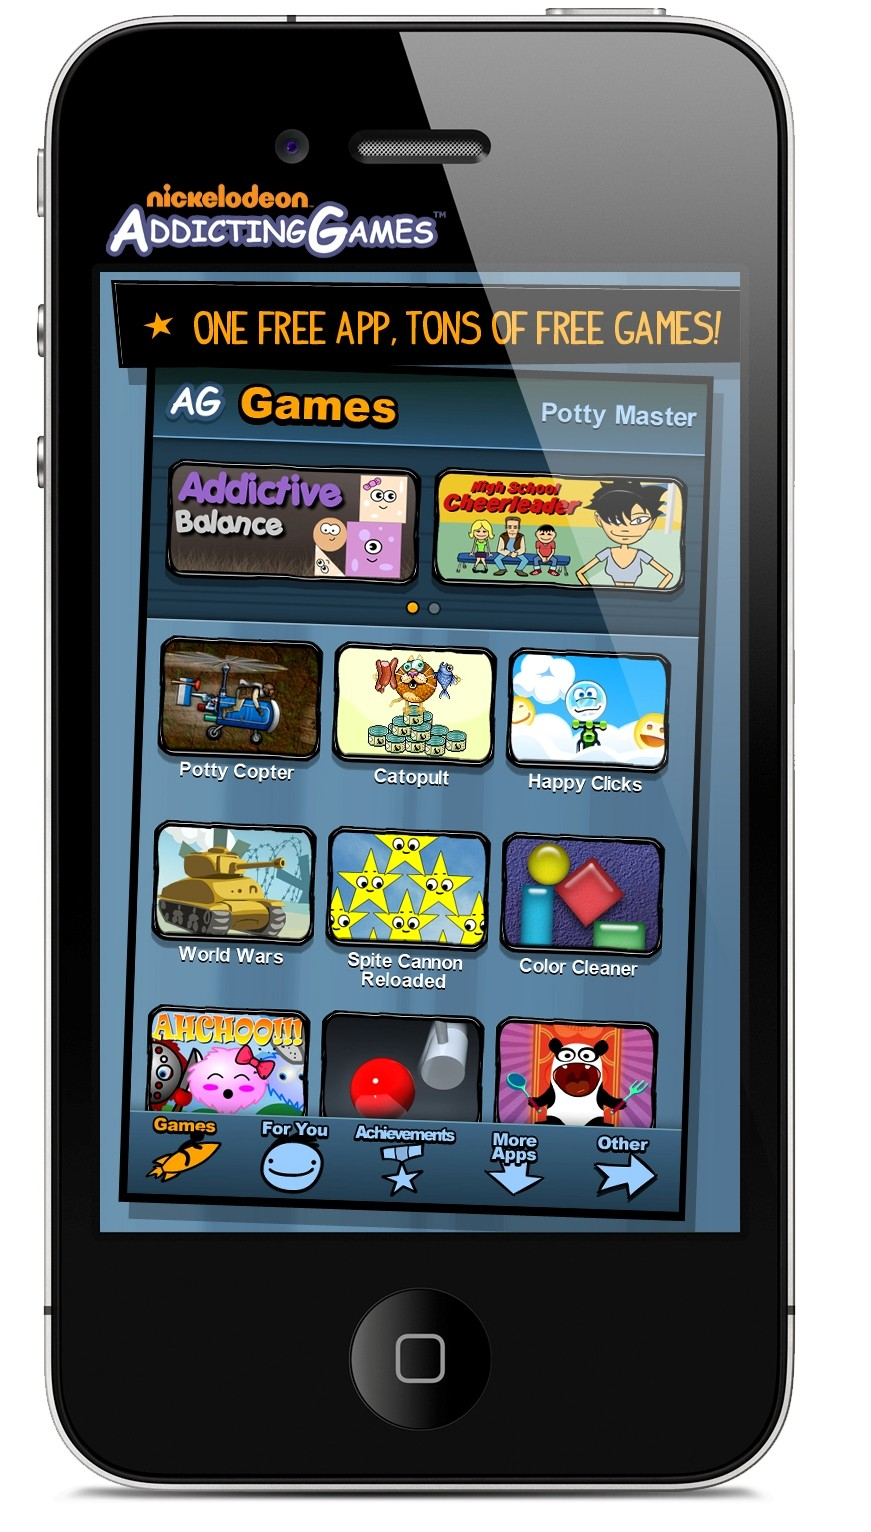 AddictingGames for iOS